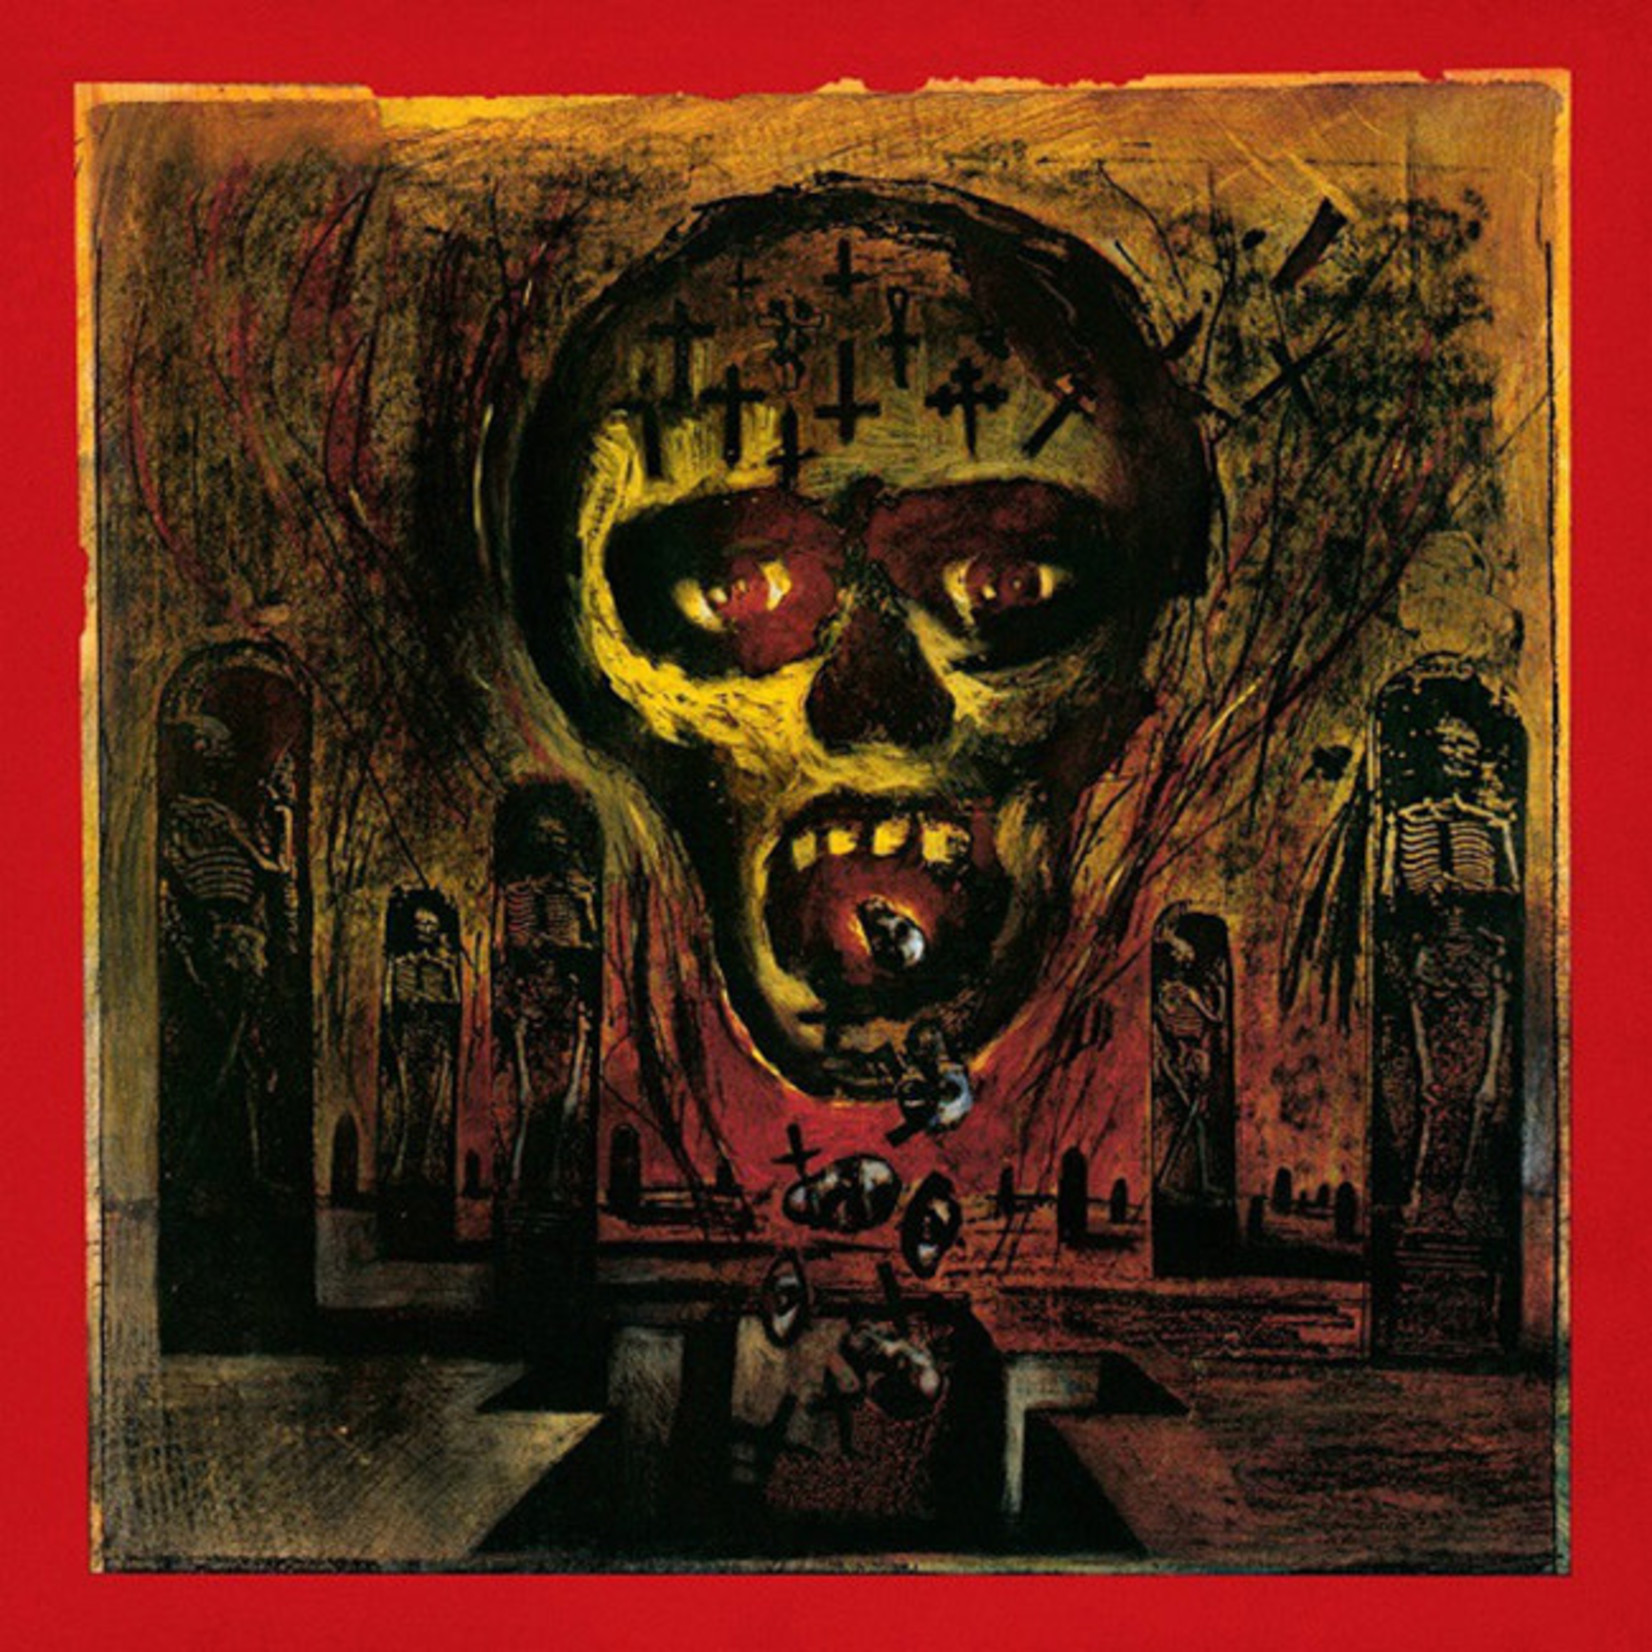 [New] Slayer: Seasons In The Abyss